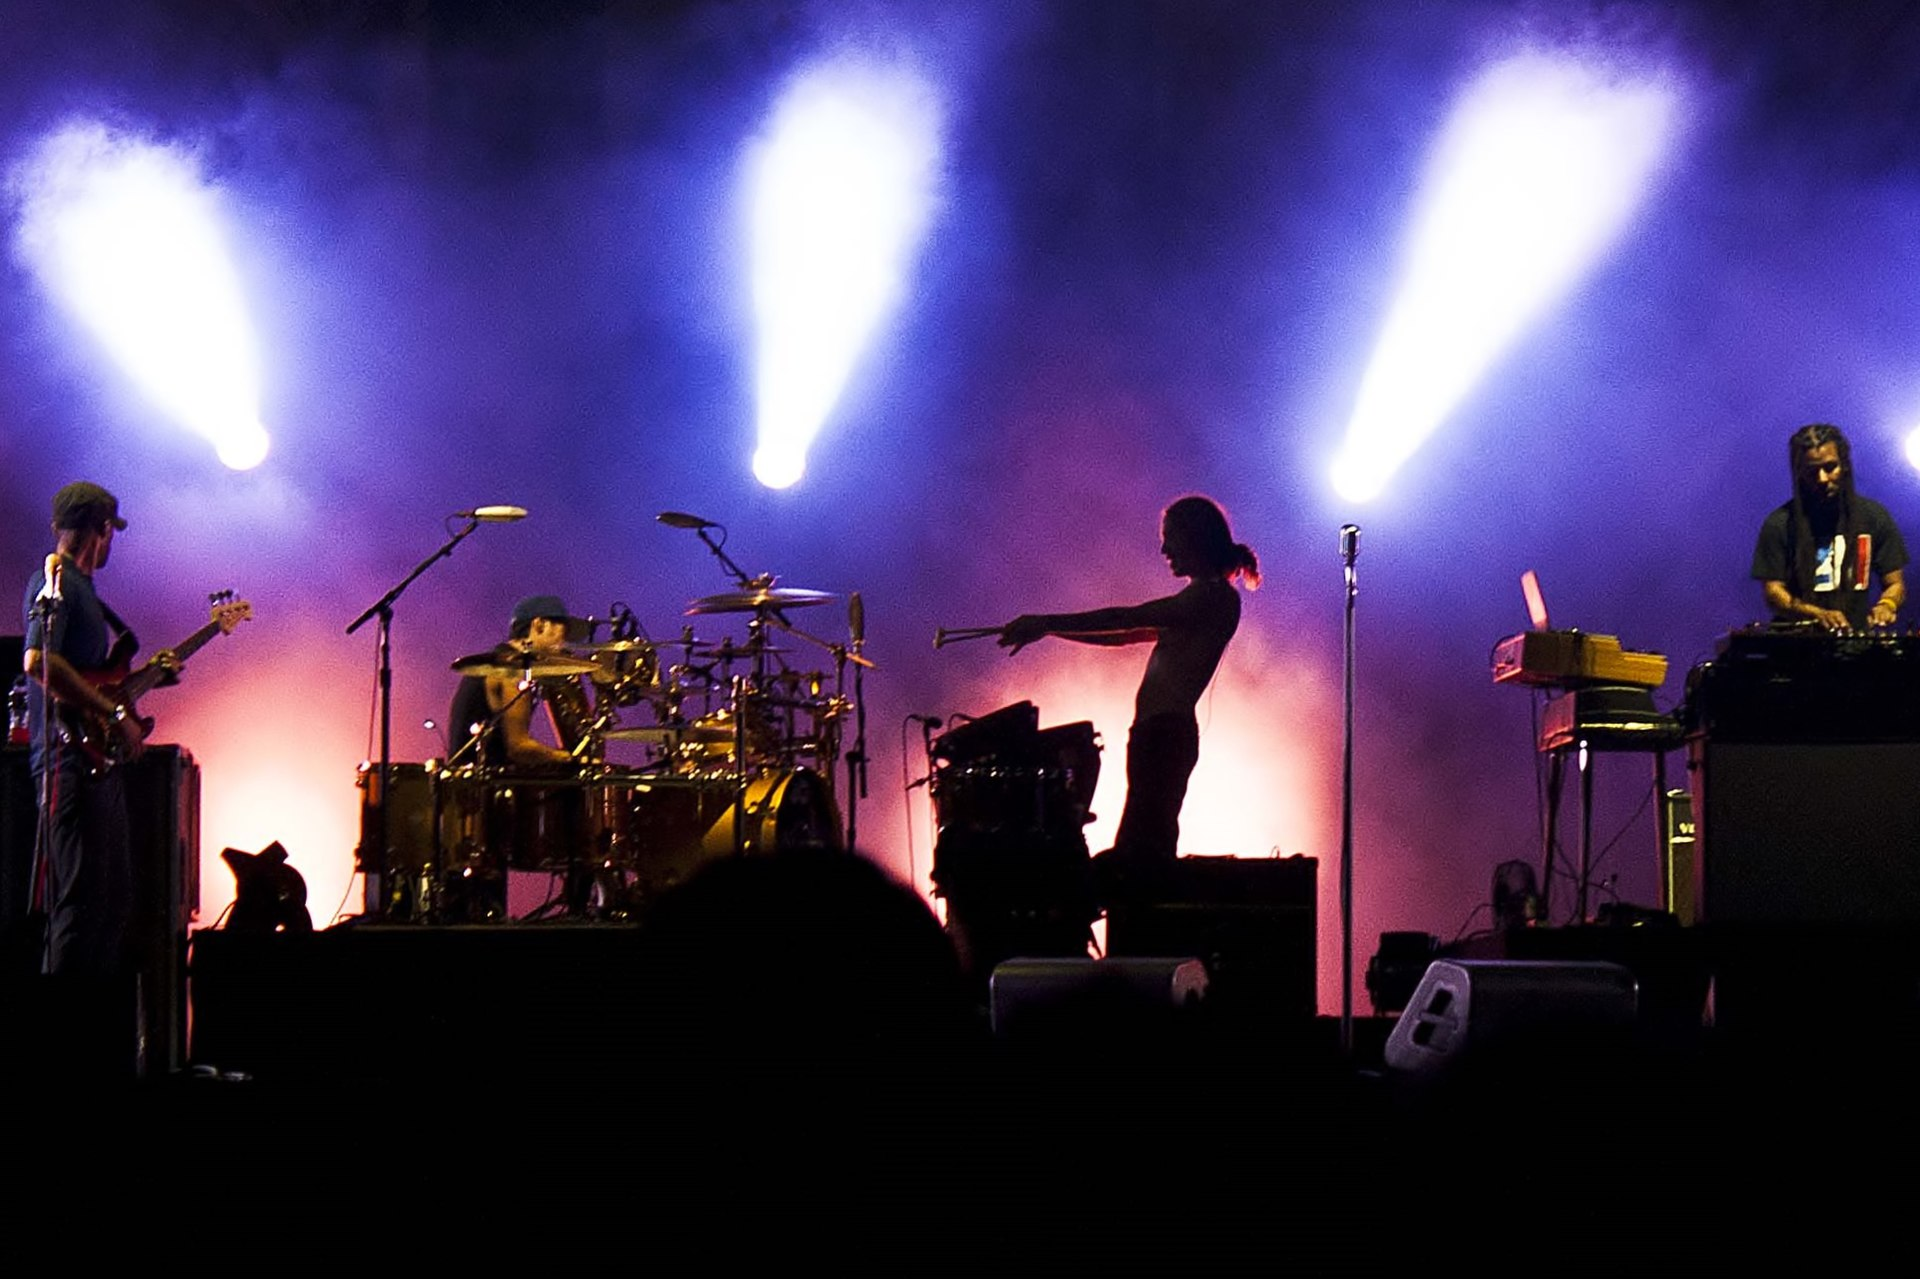 Incubus (band) - Wikip...